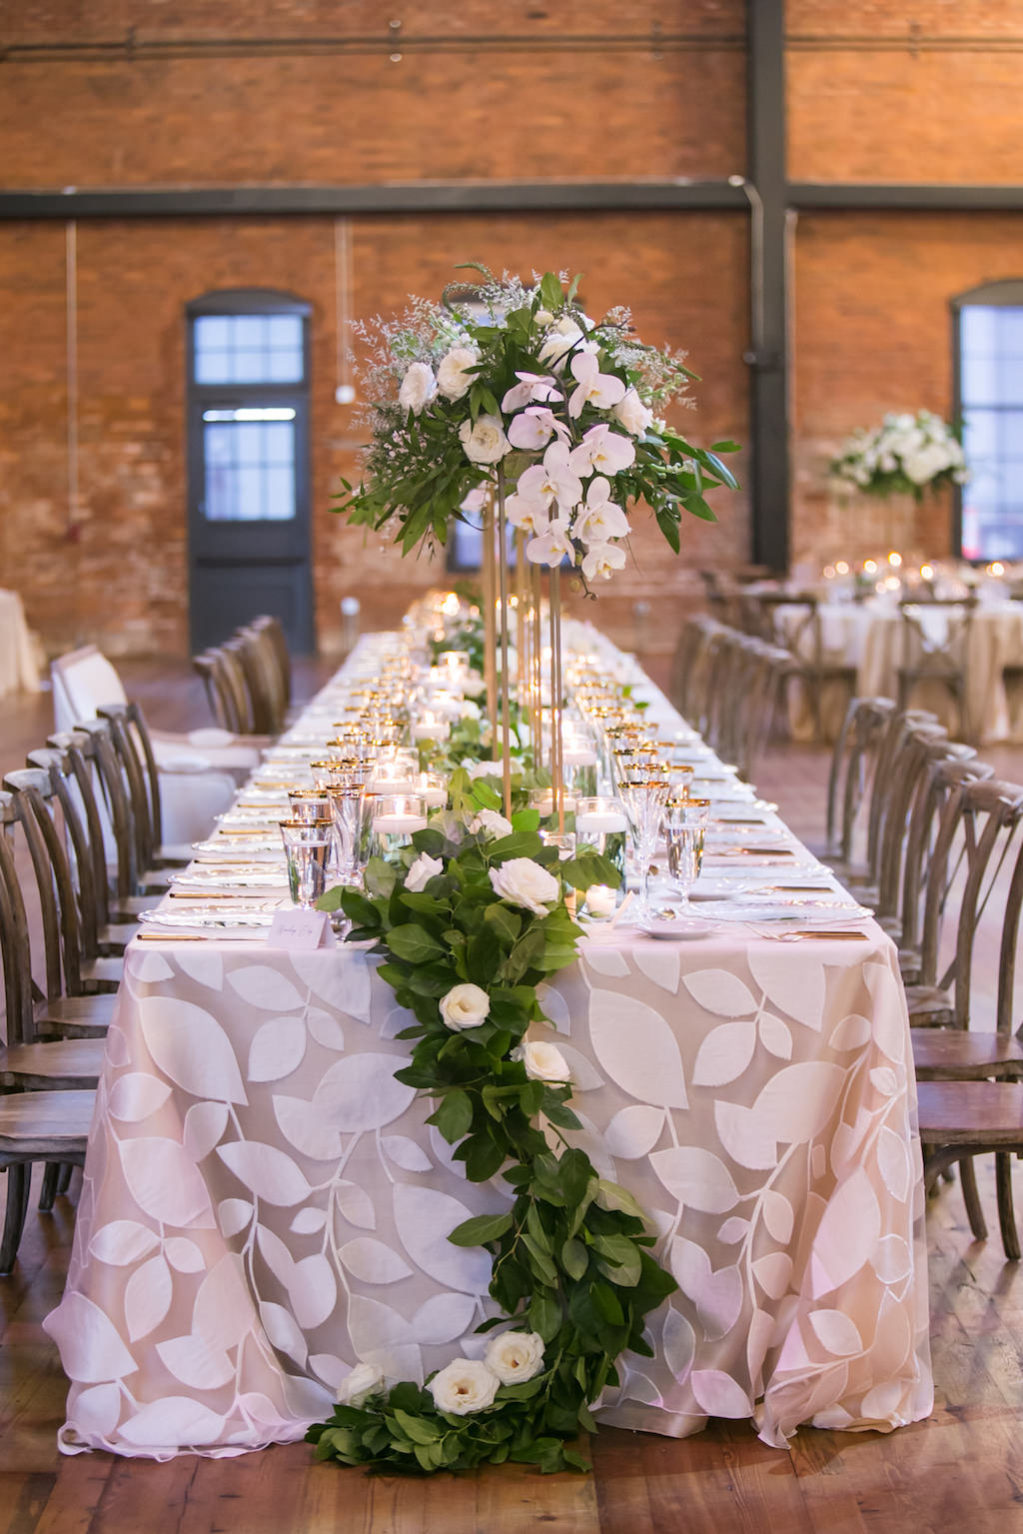 Elegant Modern Romantic Tuscan Inspired Wedding Reception Decor, Long Feasting Table with Floral Linen, Greenery and Ivory Floral Garland, Tall Gold Stand with Ivory White and Greenery Floral Centerpiece | Tampa Bay Wedding Photographer Carrie Wildes Photography | Tampa Bay Wedding and Event Rentals by Kate Ryan Event Rentals | Industrial Tampa Wedding Venue Armature Works | Over The Top Linens